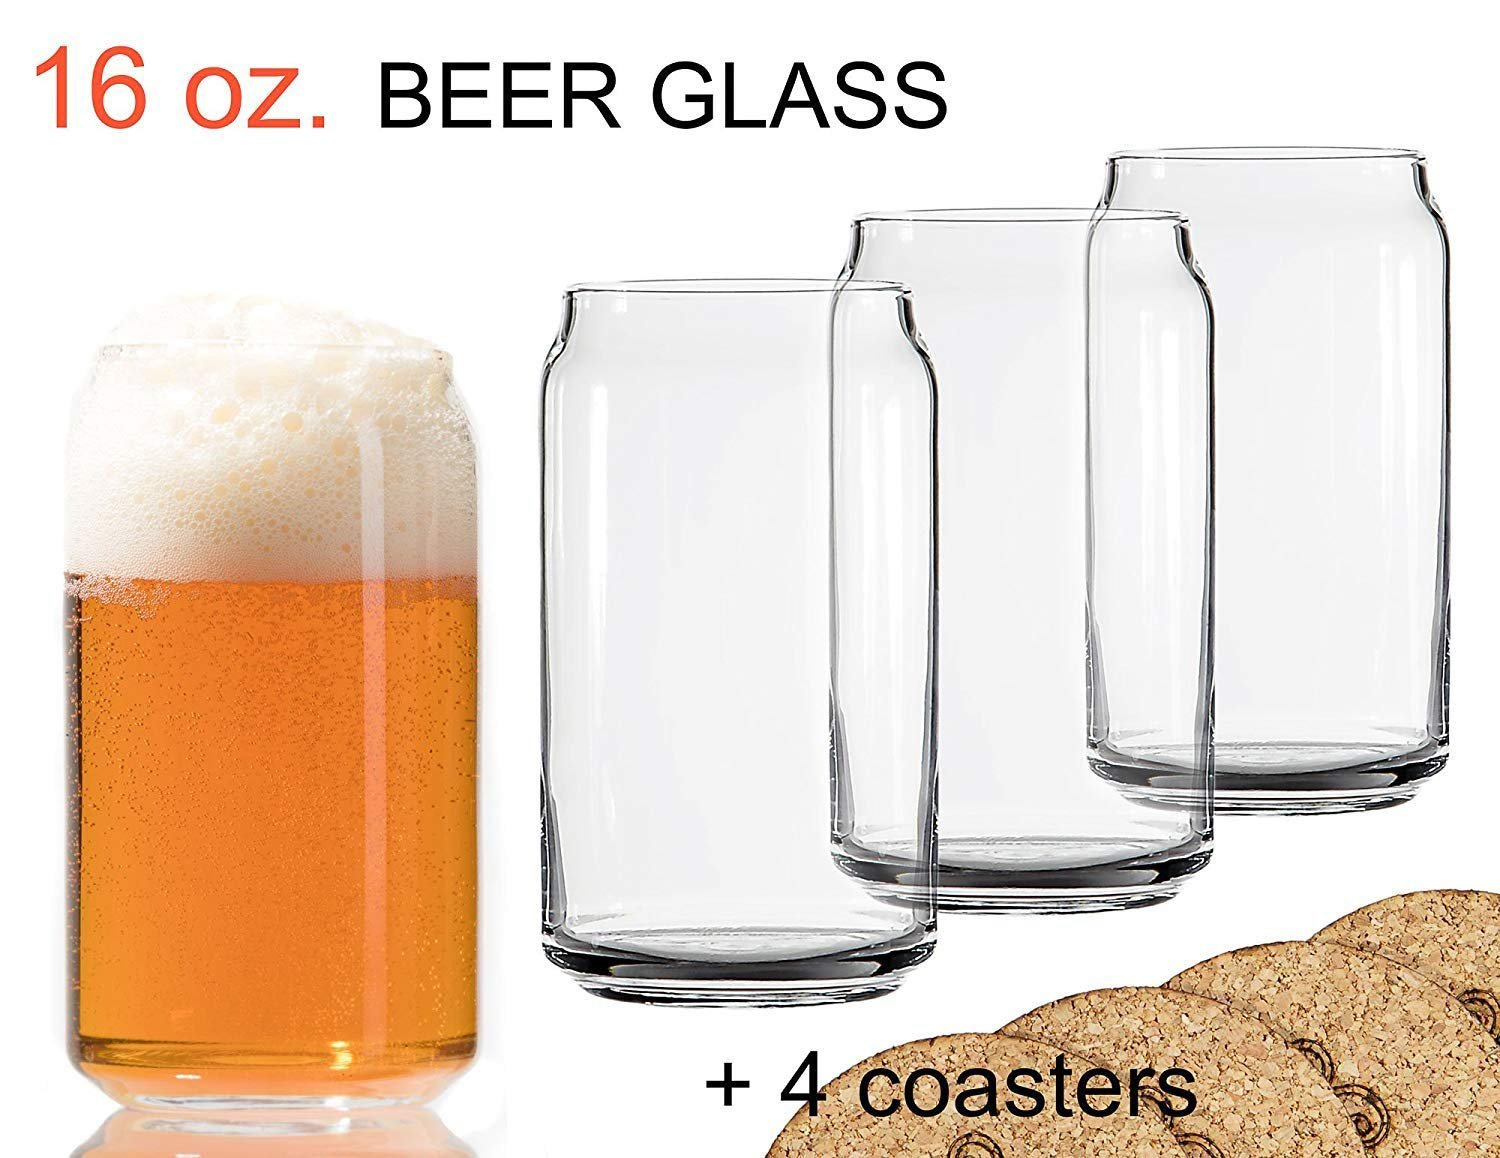 Ecodesign Drinkware Libbey Beer Glass Can Shaped 16 oz - Pint Beer Glasses 4 PACK w/coasters by Ecodesign Drinkware (Image #1)